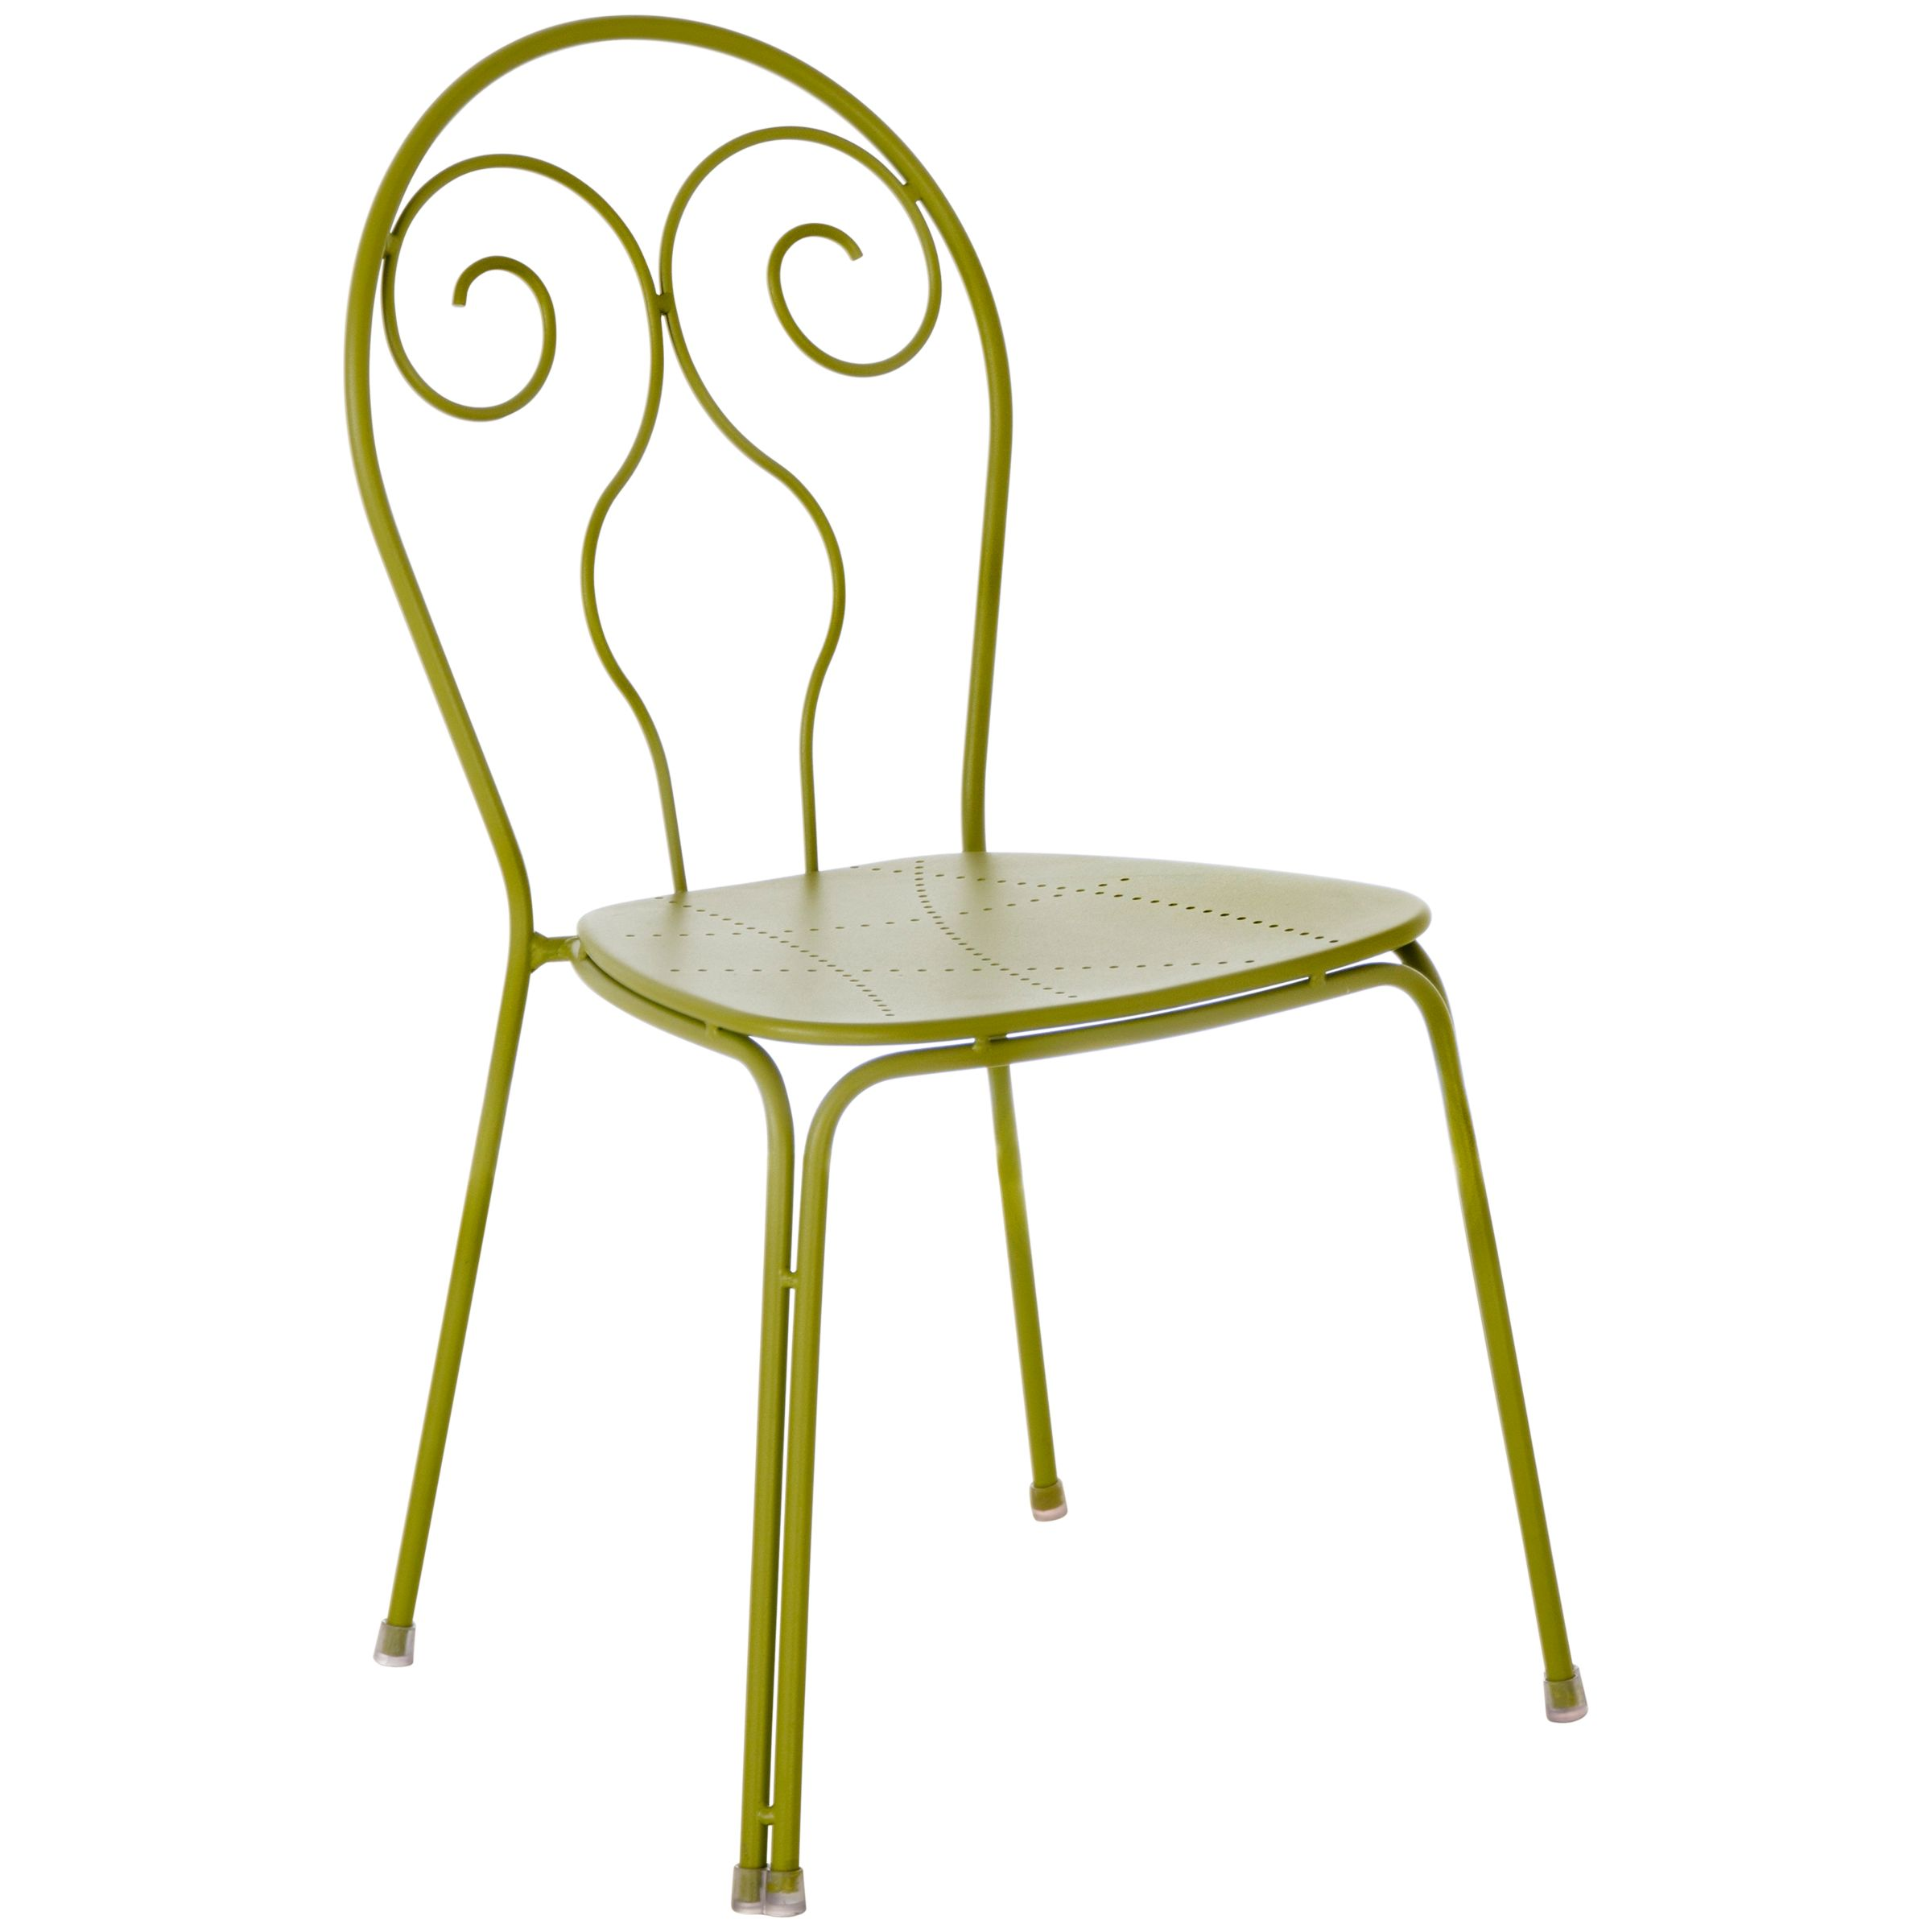 EMU Caprera Outdoor Dining Chairs, Set of 4